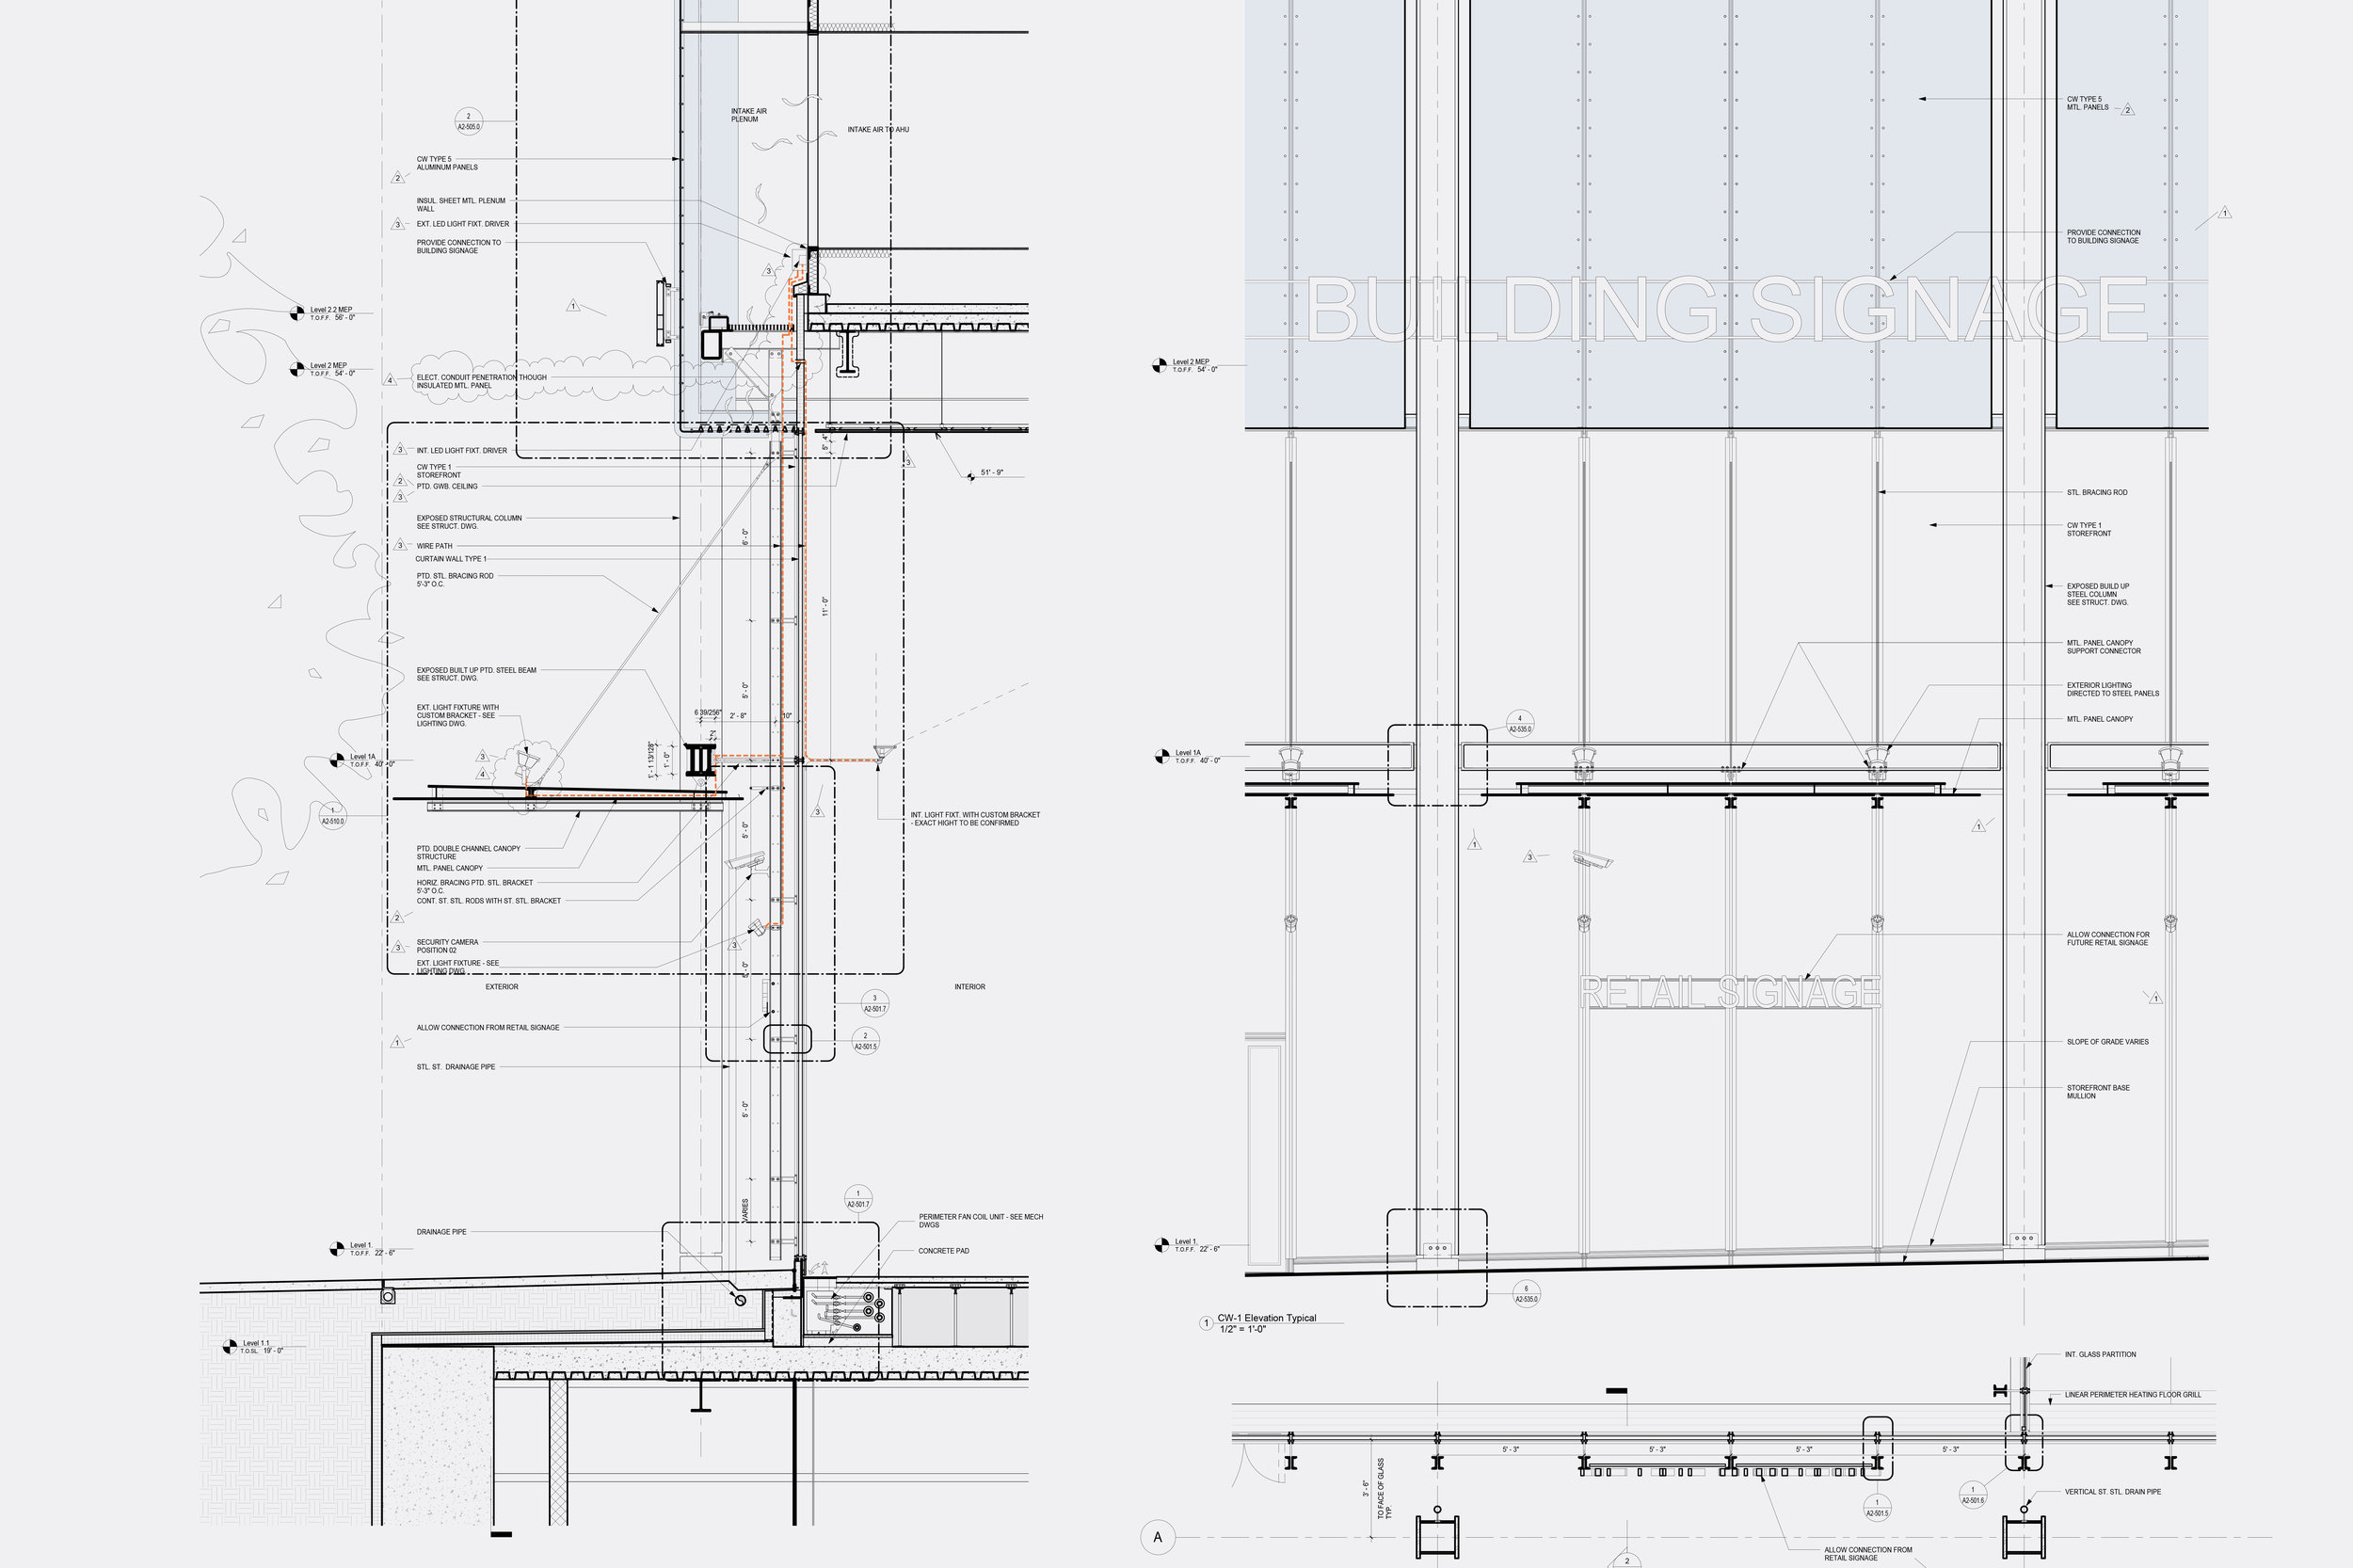 Curtain wall details @ entry